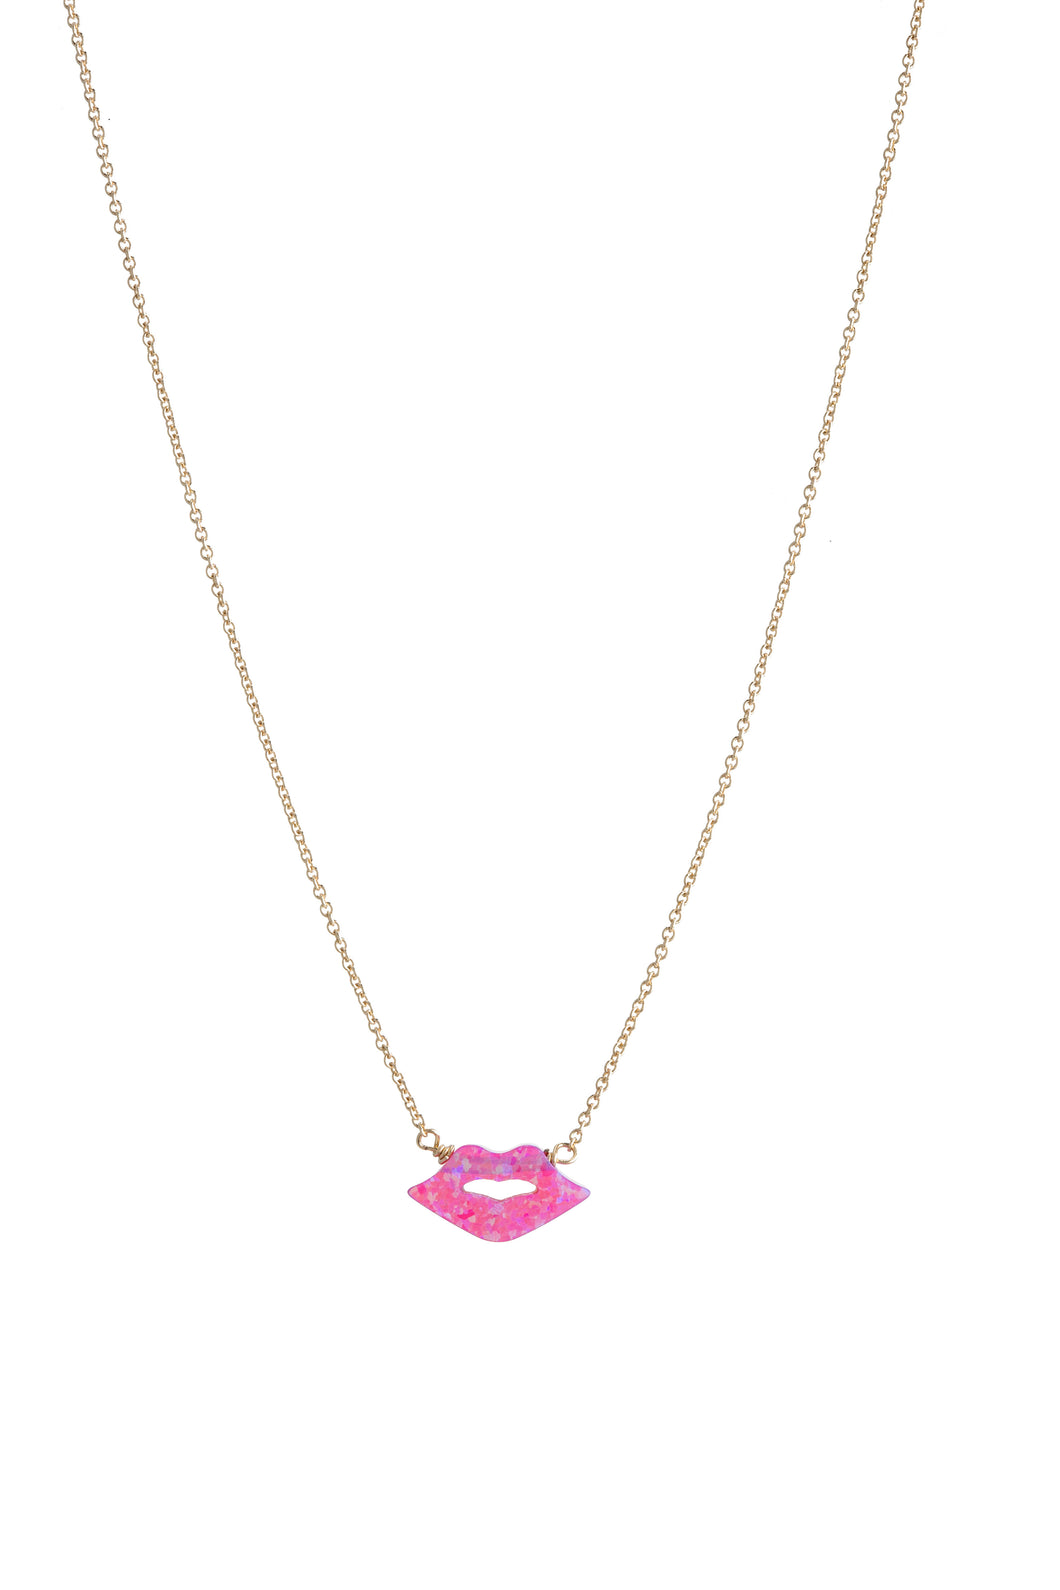 KISS/LIPS NECKLACE